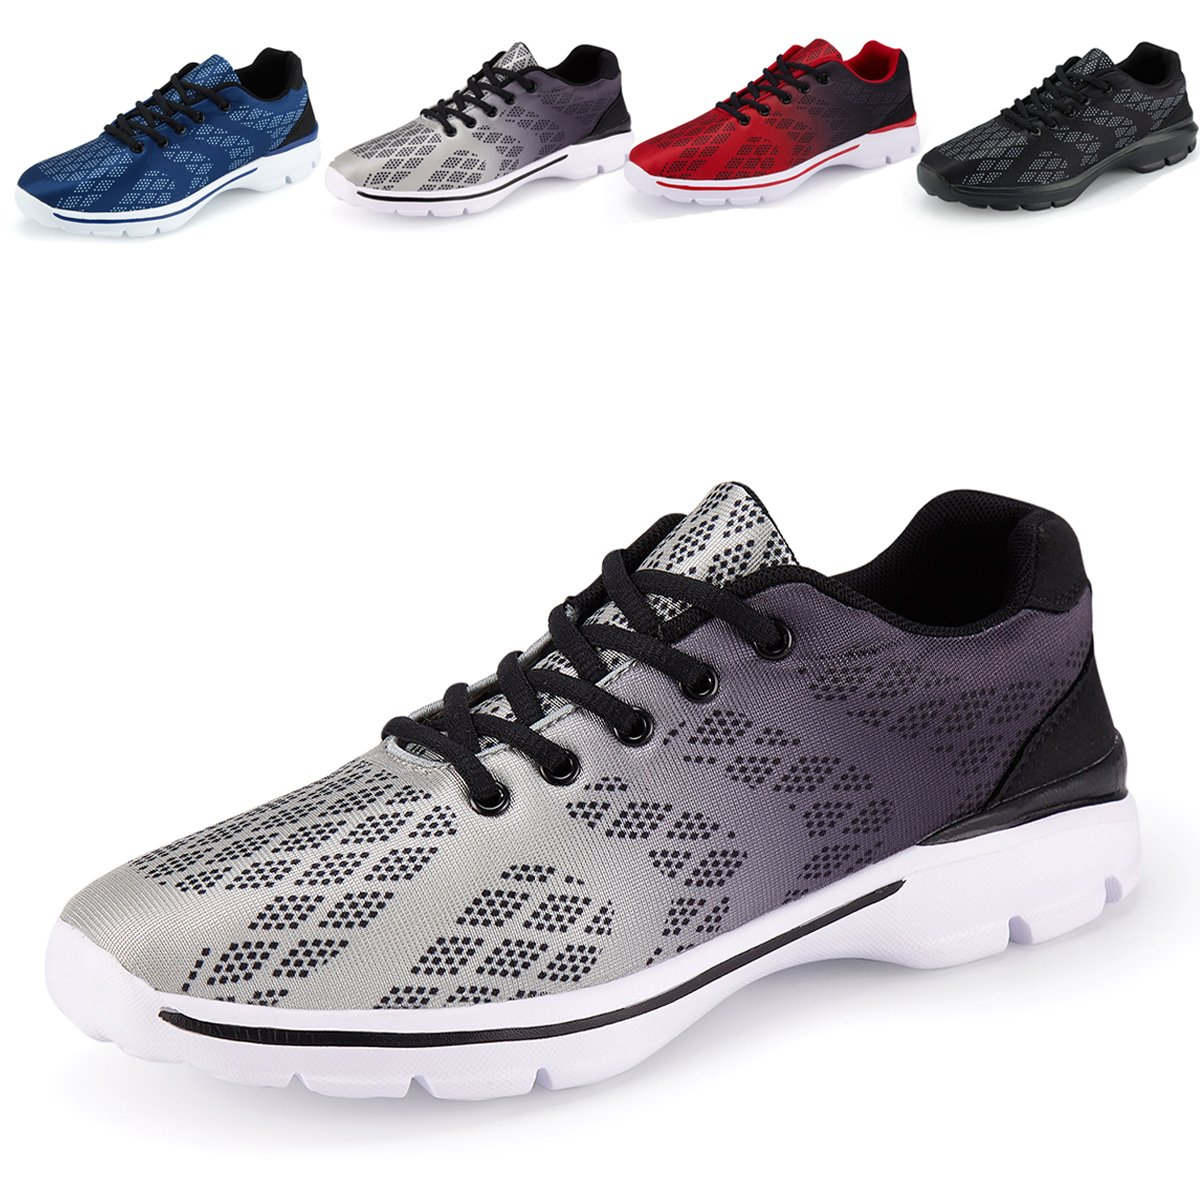 Mens Casual Walking Shoes Lightweight Breathable Running Tennis Sneakers by Caitin